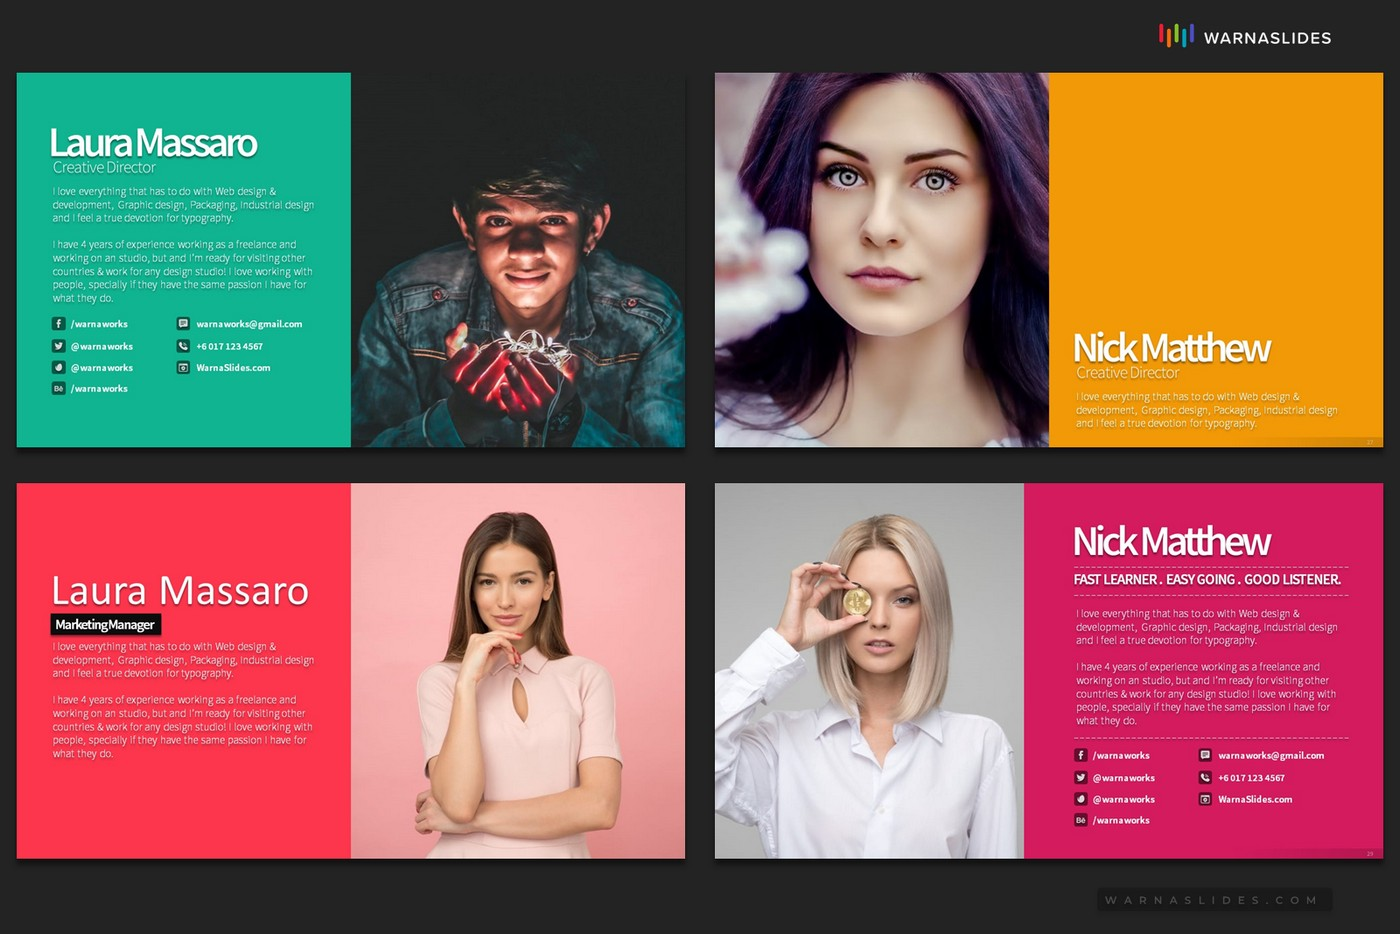 About-Me-Resume-Profile-PowerPoint-Template-2020-Skill-Expertise-for-Business-Pitch-Deck-Professional-Creative-Presentation-by-Warna-Slides-012